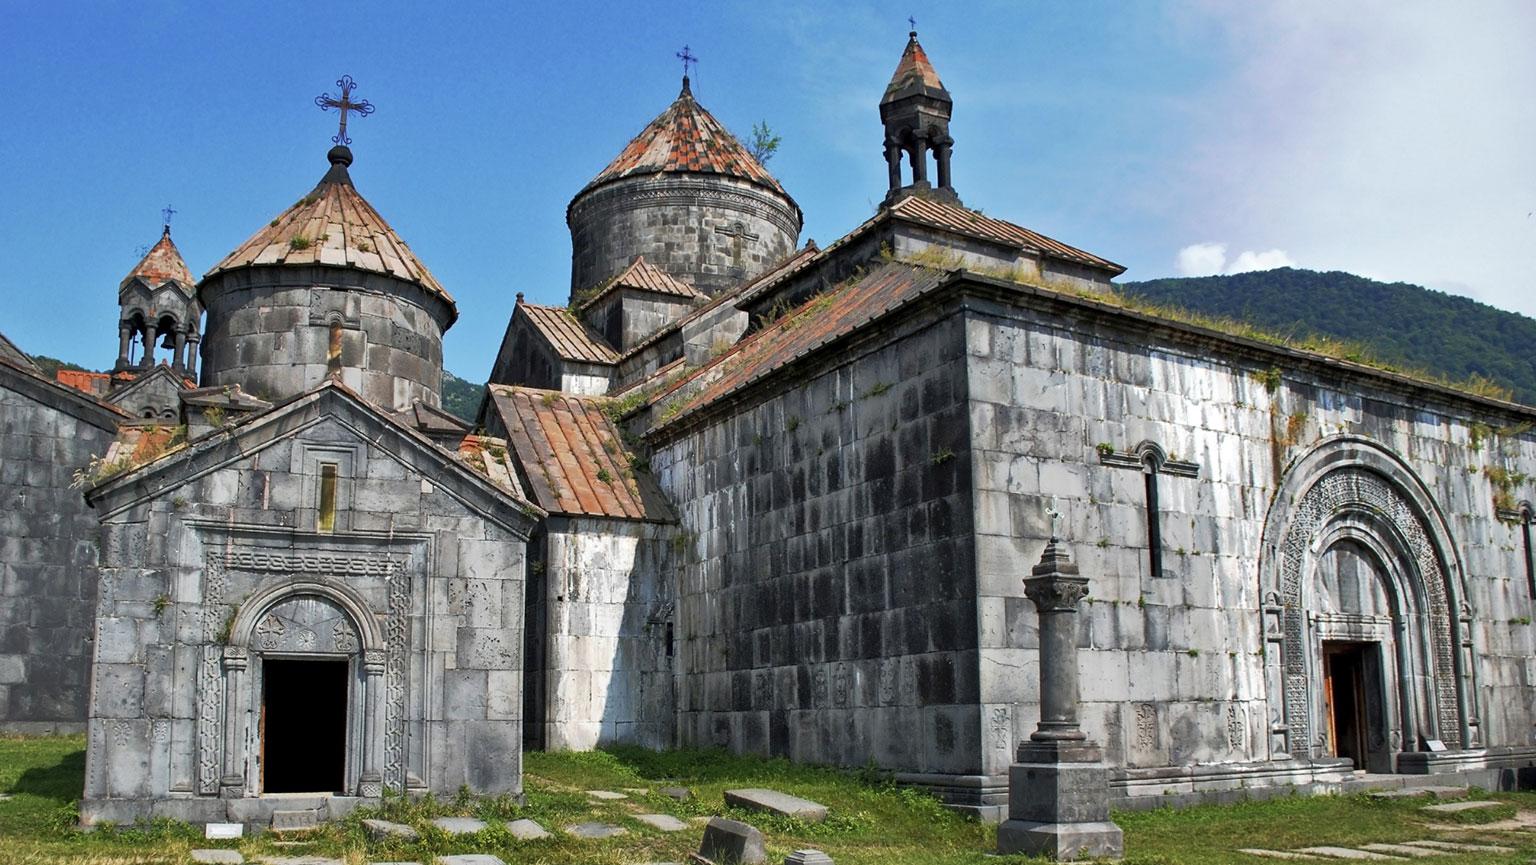 The Churches of Armenia